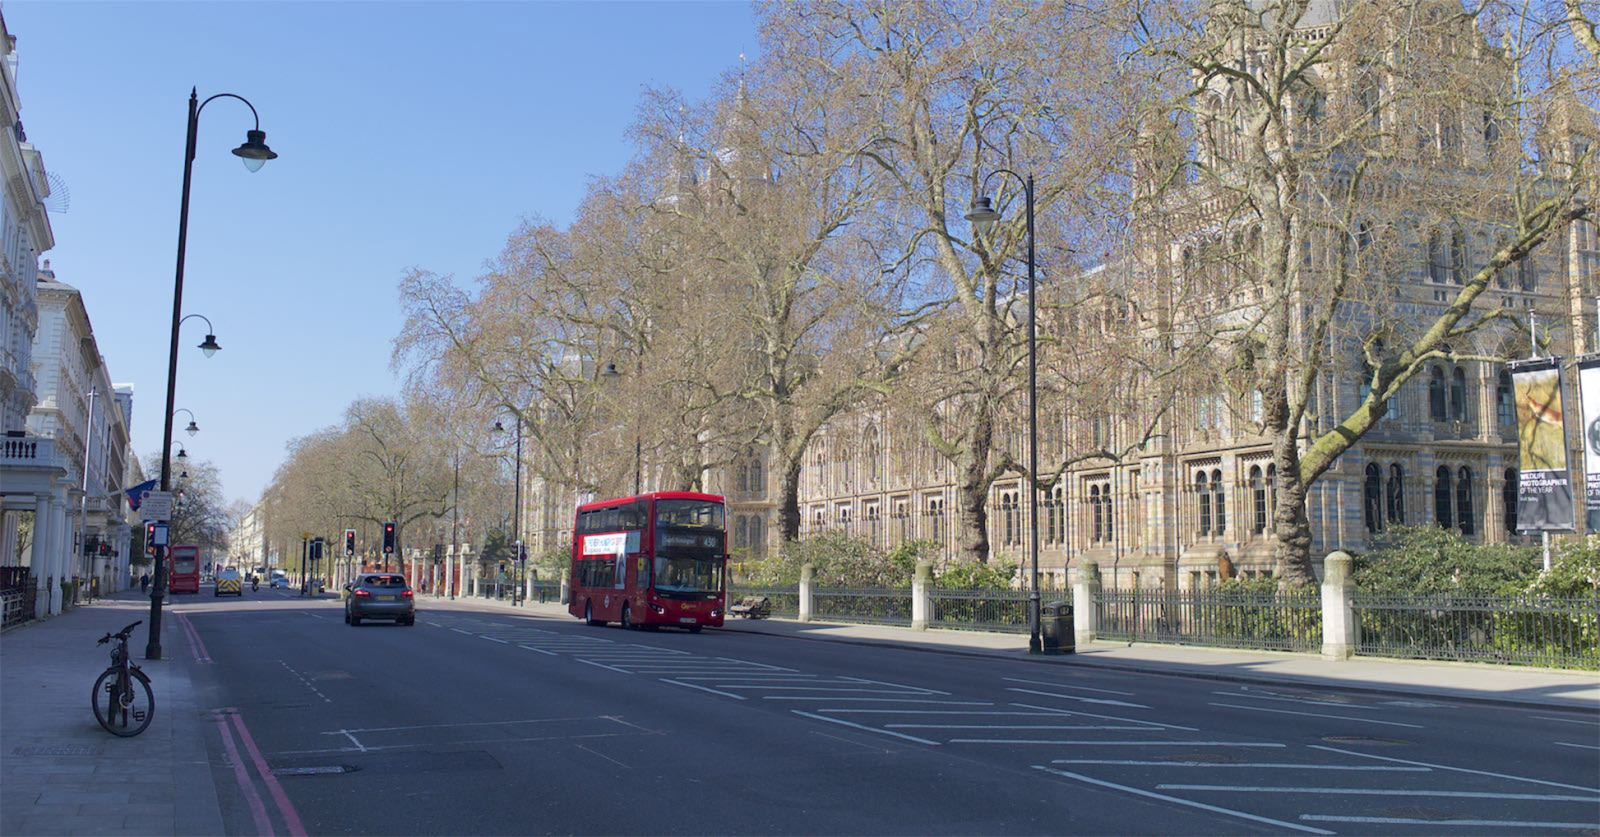 Lockdown London: Natural History Museum (captured by John Tarby en route to an essential medical appointment)